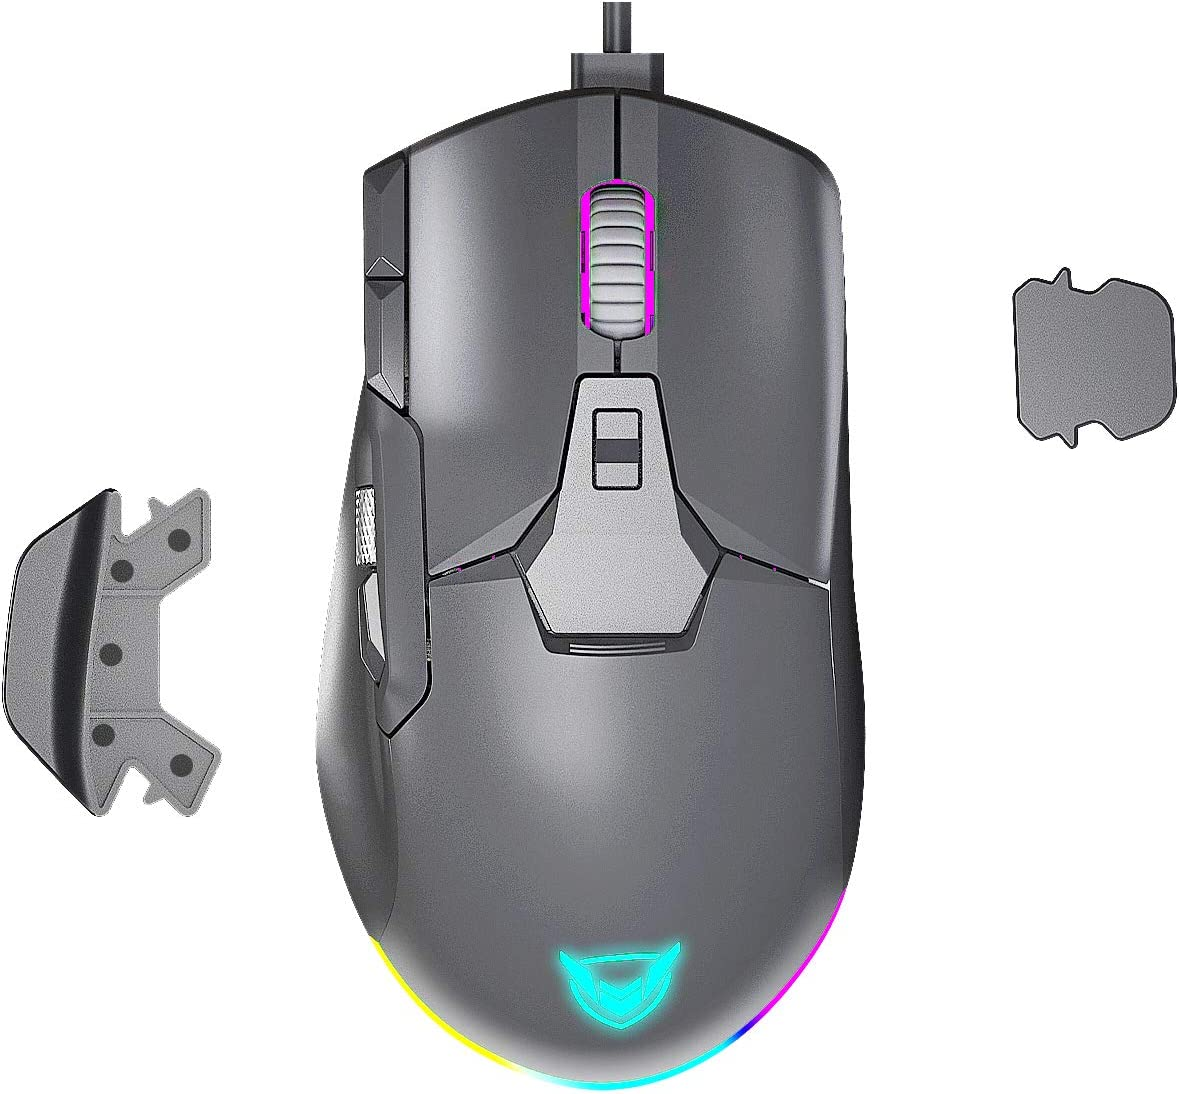 PICTEK Wired RGB Gaming Mouse, Side Metal Scroll Wheel for Volume Control, 8 Button Programmable Mice with Detachable Finger Rests, Fire Button, Sniper Button, Up to 12000 DPI for PC, Laptop, Gray